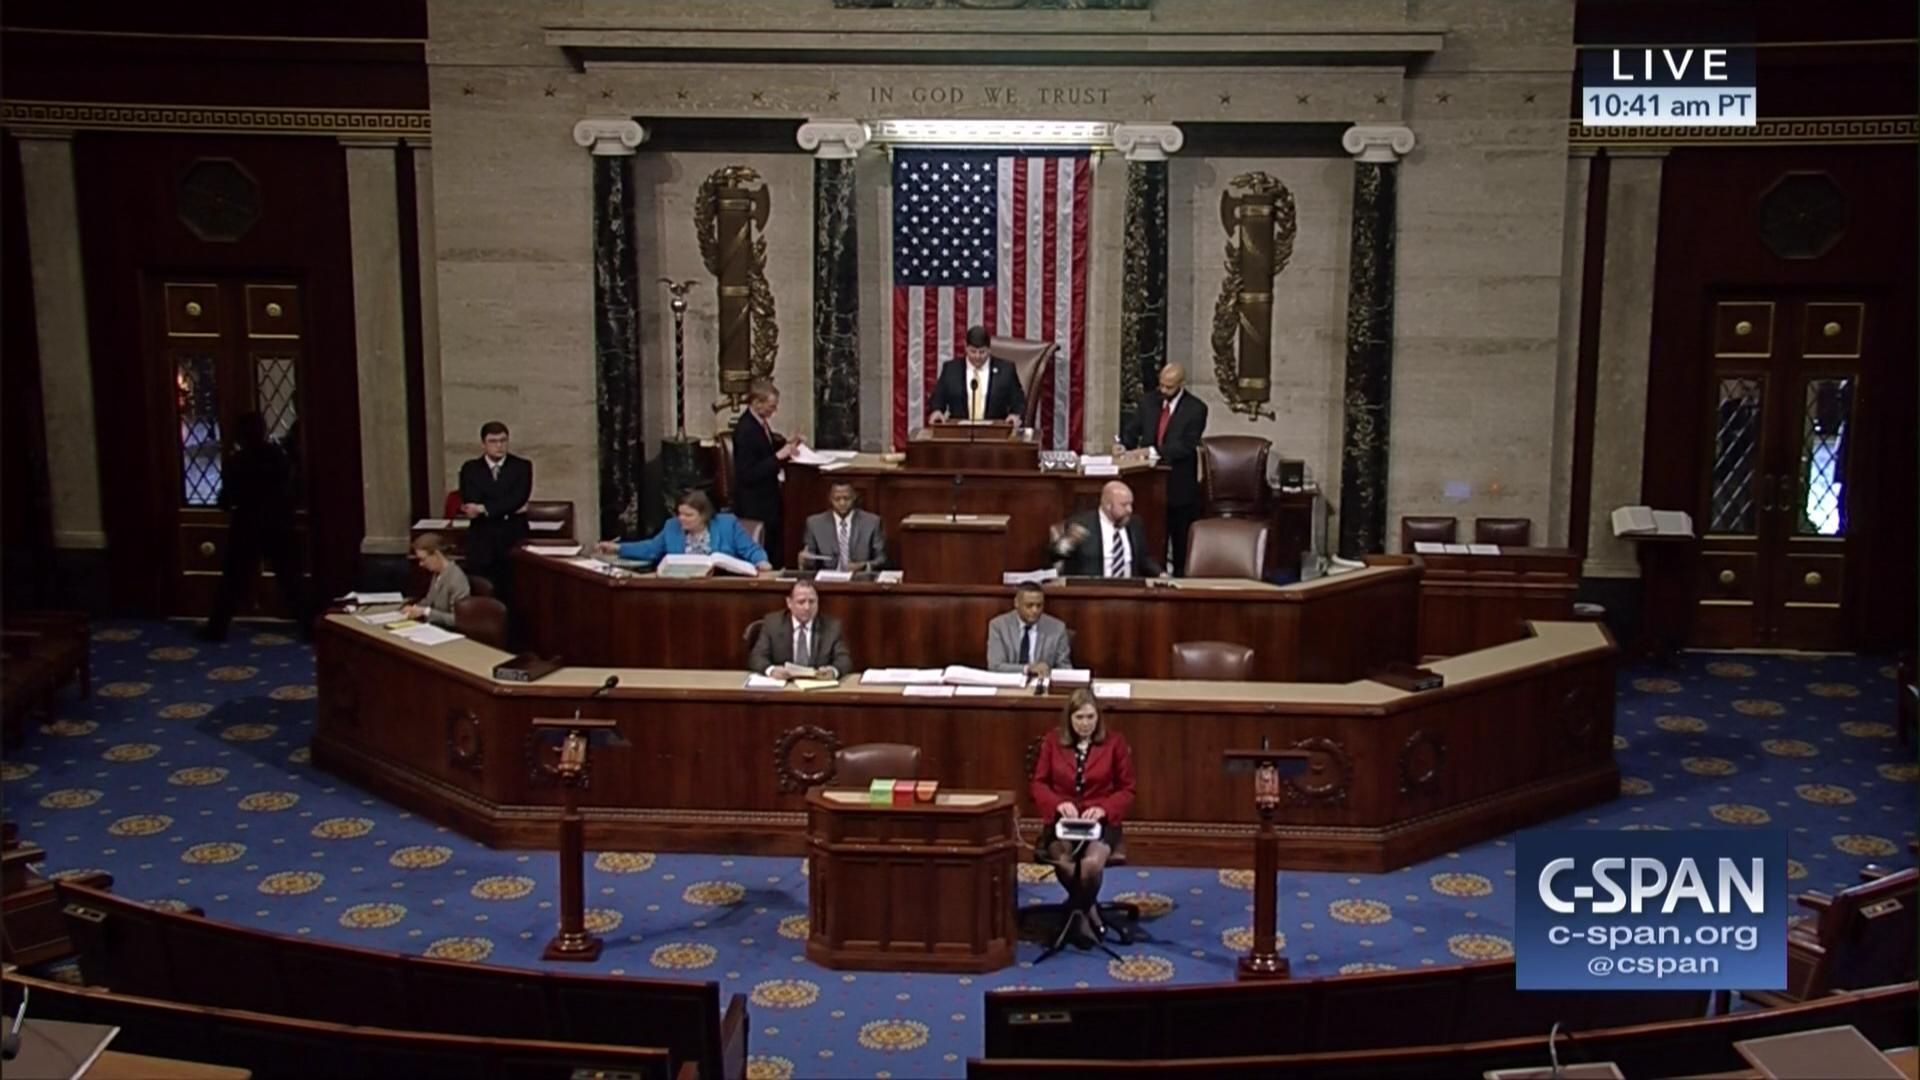 House Session Part 3 Feb 2 2017 Video Angie39s List Tip Older Homes With Defective Circuit Breakers